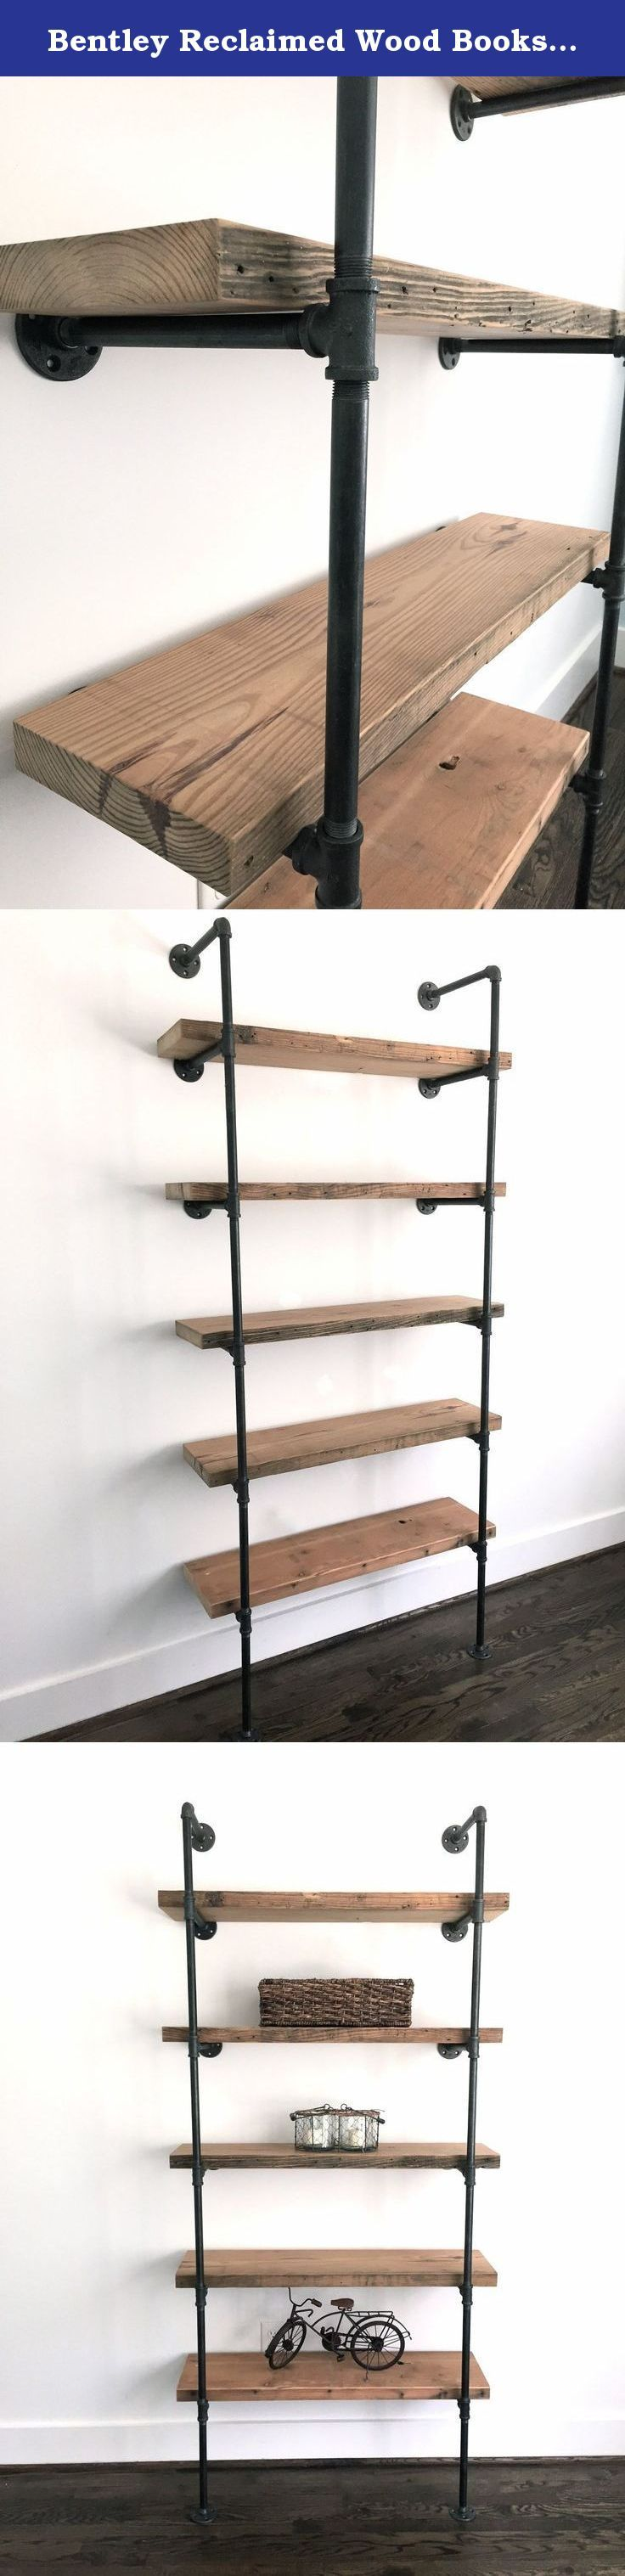 Bentley Reclaimed Wood Bookshelf. Industrial cool, meet sleek storage. Pack all of your favorite stuff onto the Bentley Bookshelf. Made from thick reclaimed wood floor joists from a demolished factory in Baltimore, MD and industrial piping. This unit attaches to the wall for stability with standard screws through the flange holes. Sits flush against the wall. (Note: you need to screw through at least one flange connector on each side of the pipe frame, but you do not need to screw through...